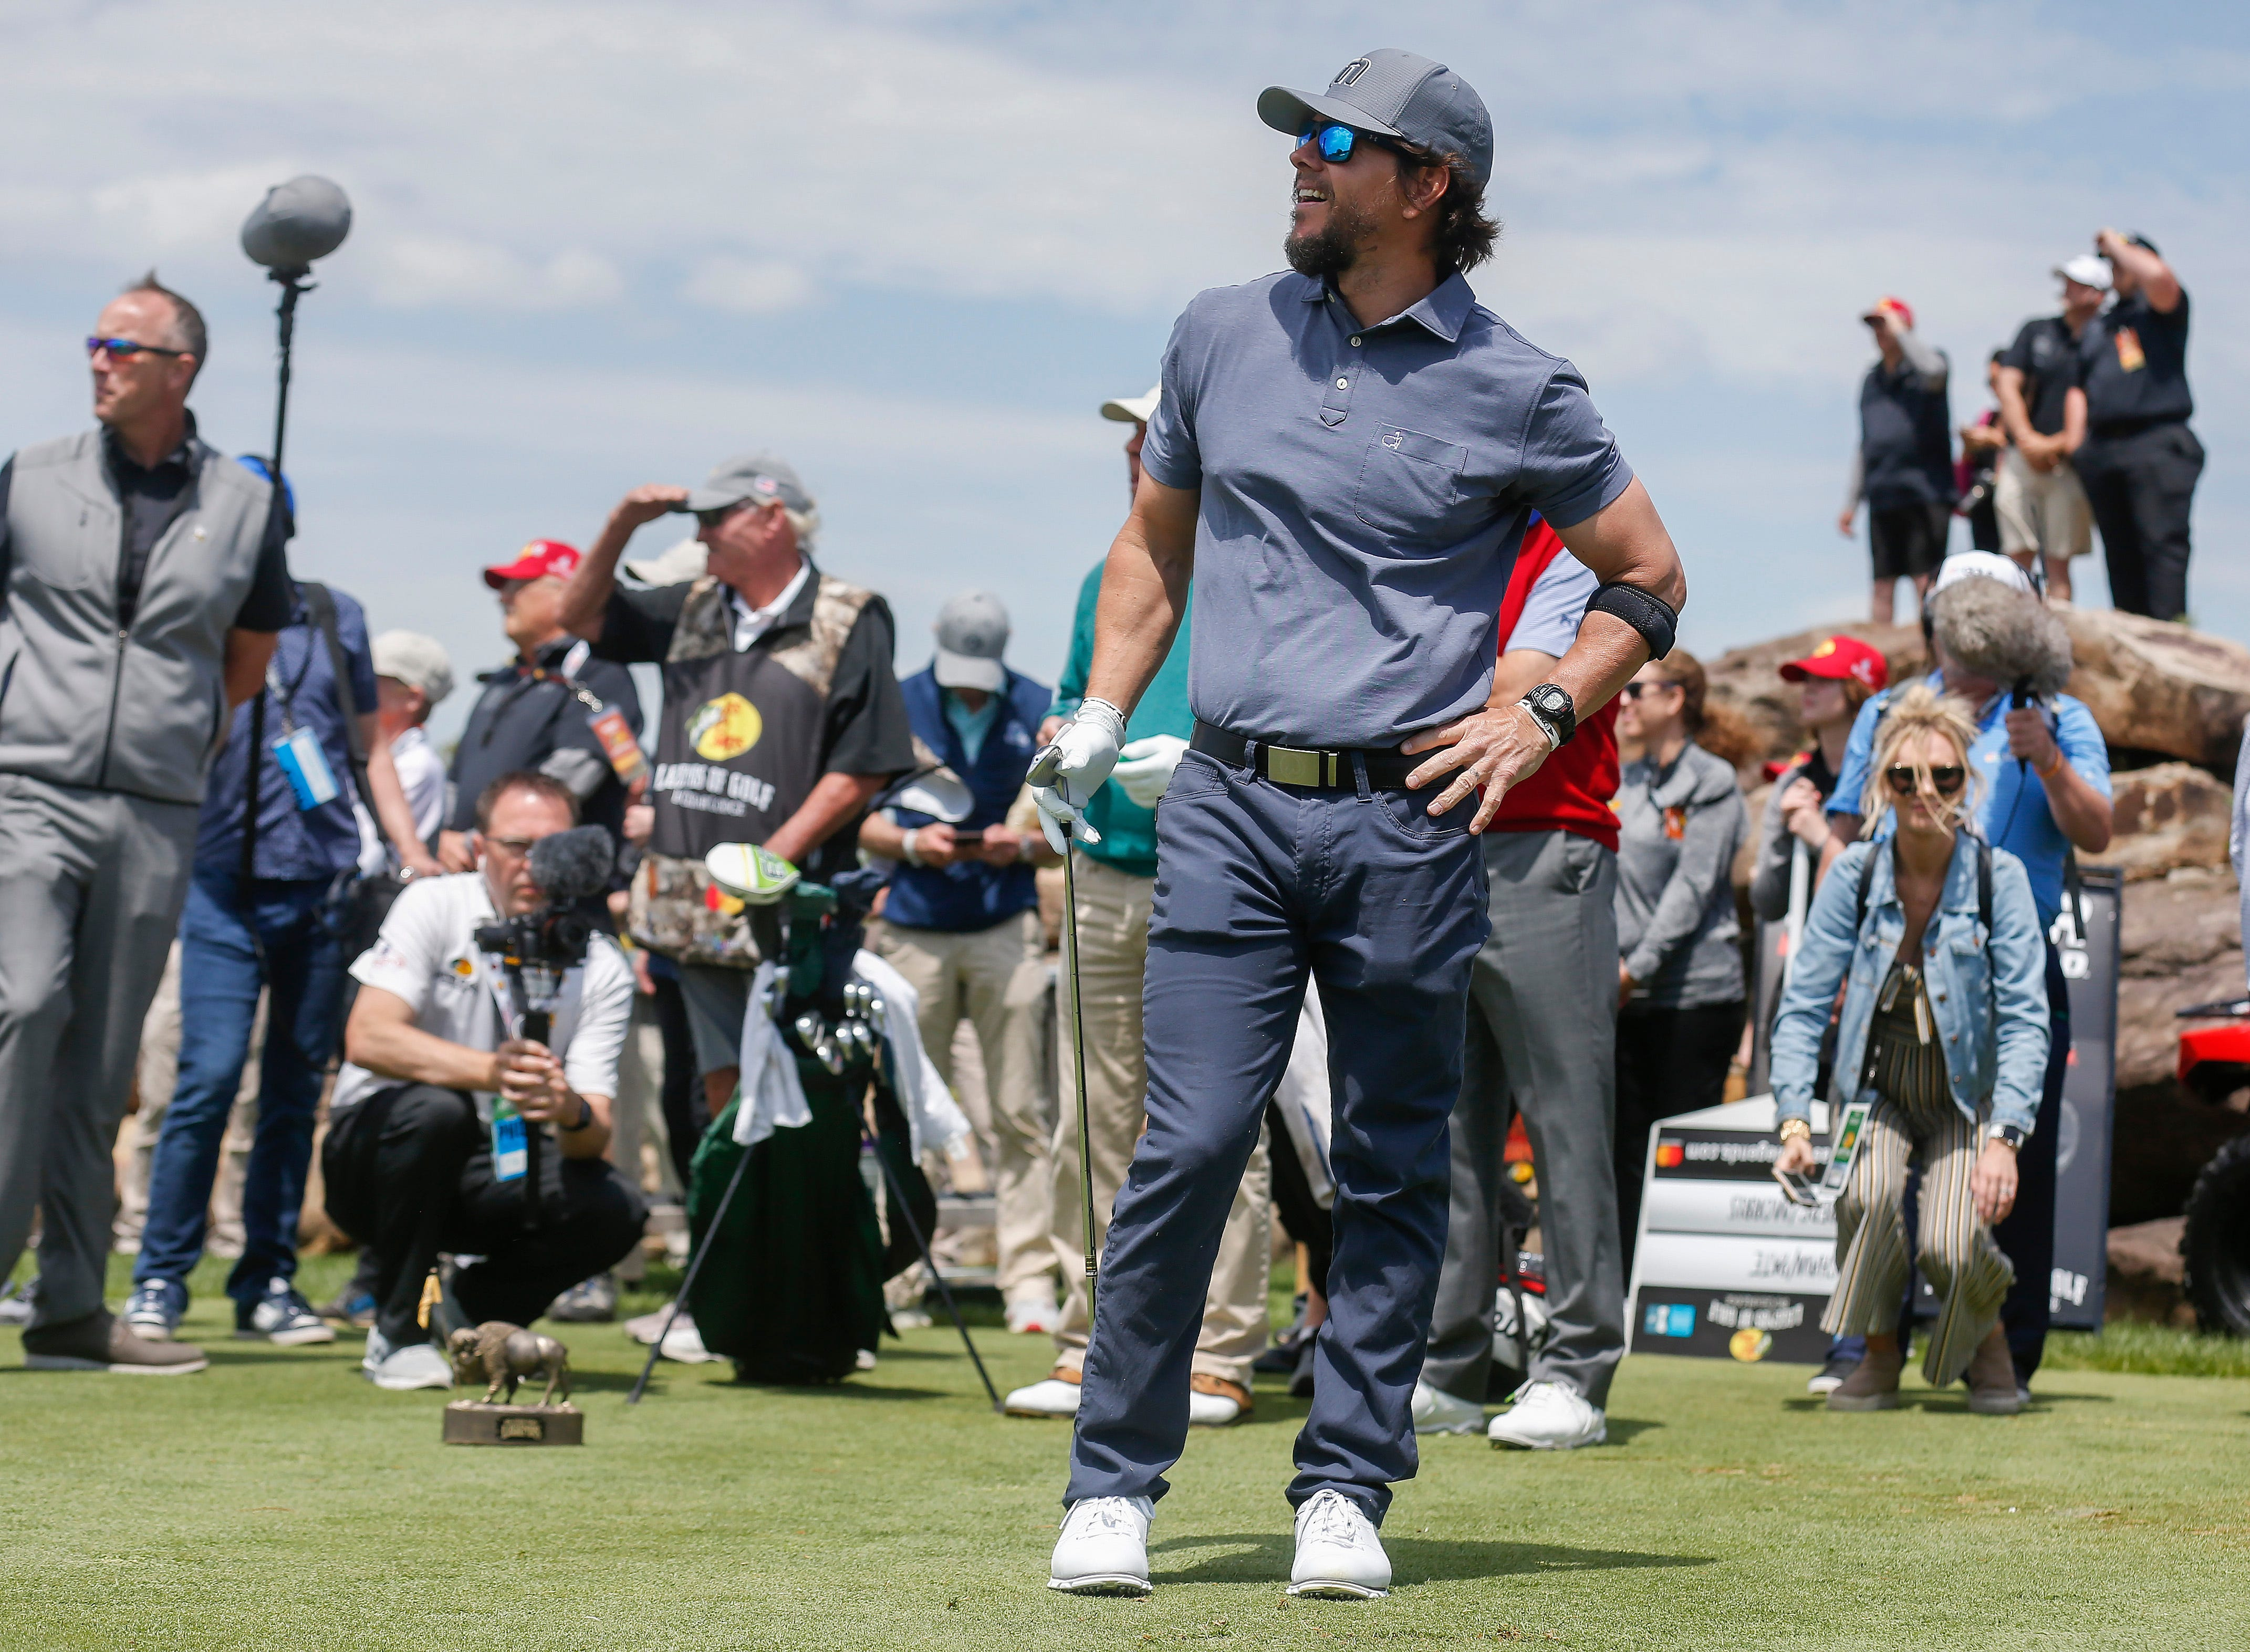 Mark Wahlberg at the Bass Pro Shops Legends Competition at Top of the Rock on Saturday, April 27, 2019.